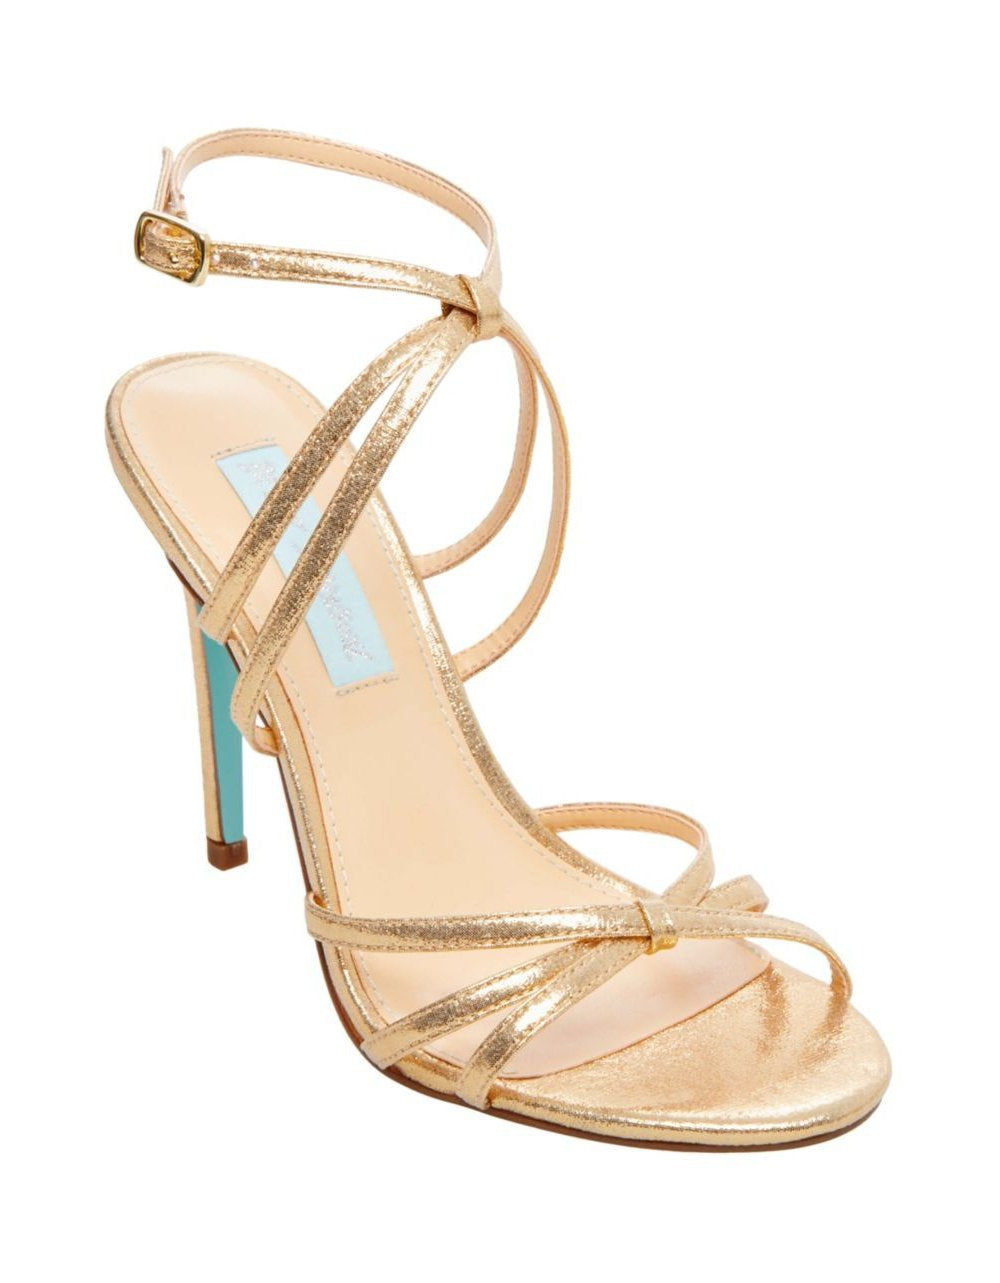 SB-MYLA CHAMPAGNE - SHOES - Betsey Johnson